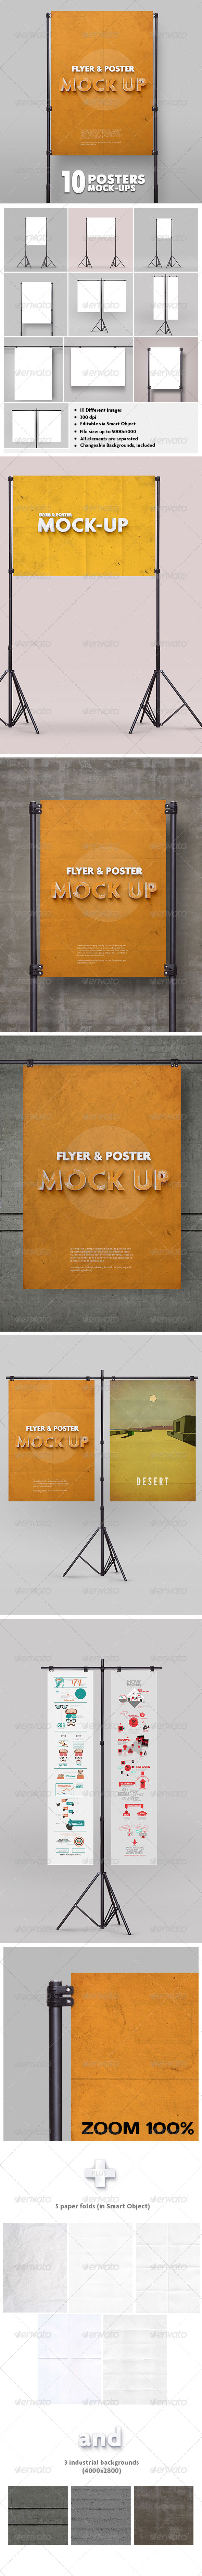 GraphicRiver Poster Mockup vol.2 10 Different Images 6323685